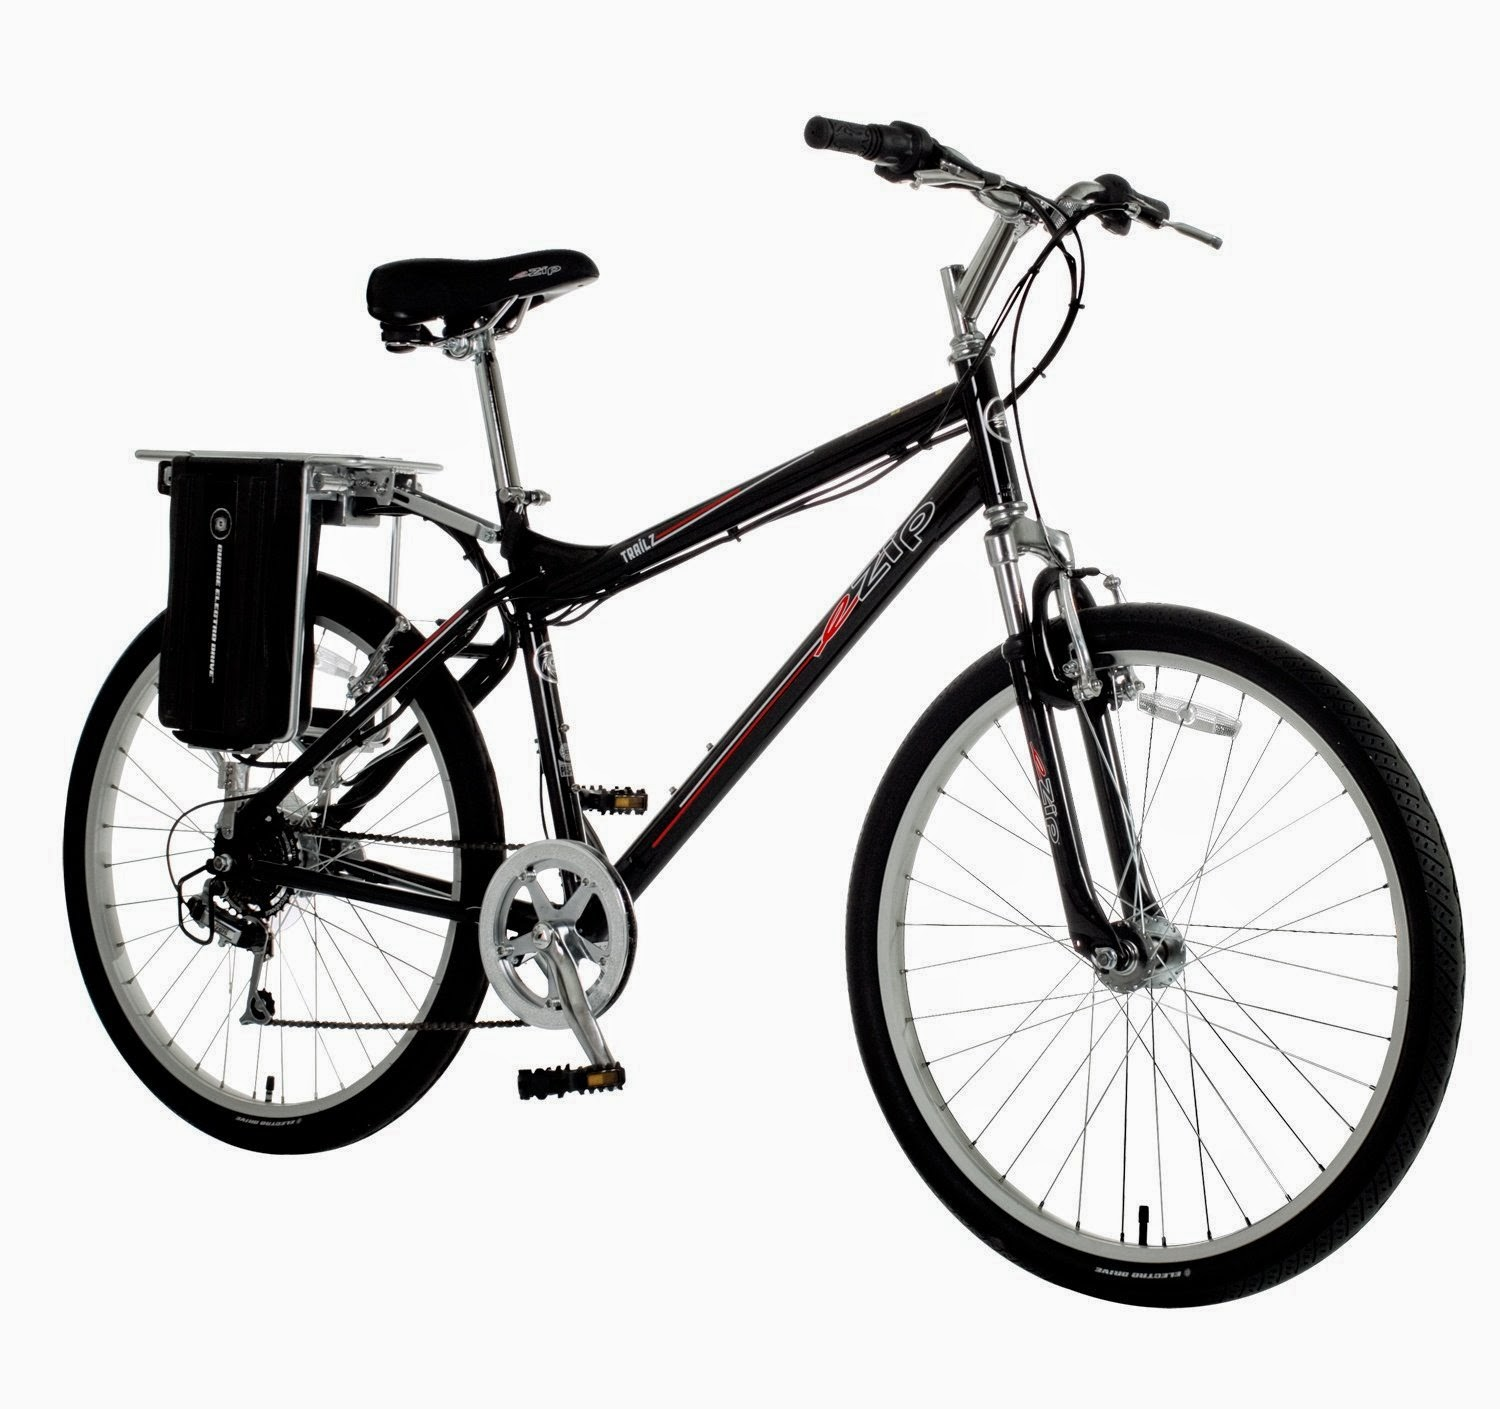 Currie Technologies eZip Men's Trailz Electric Bicycle, review, reaches speeds up to 15 mph, with a range of 15-22 miles per charge